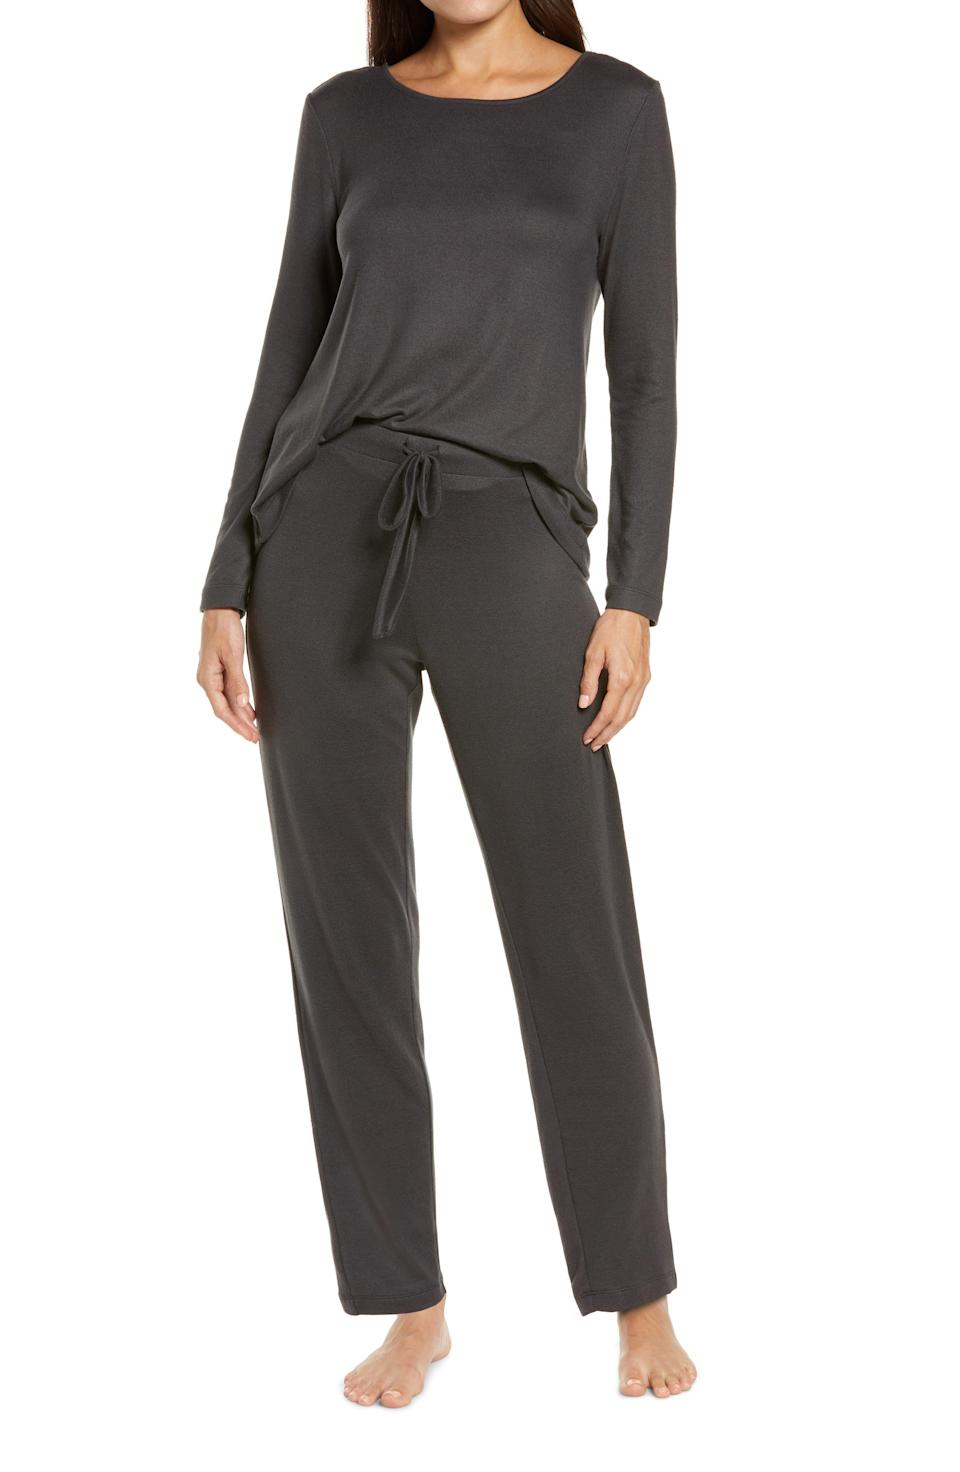 """<p><strong>Natori</strong></p><p>nordstrom.com</p><p><strong>$98.00</strong></p><p><a href=""""https://go.redirectingat.com?id=74968X1596630&url=https%3A%2F%2Fwww.nordstrom.com%2Fs%2Fnatori-fleece-pajamas%2F5763952&sref=https%3A%2F%2Fwww.prevention.com%2Flife%2Fg37664571%2Fbest-fleece-pajamas%2F"""" rel=""""nofollow noopener"""" target=""""_blank"""" data-ylk=""""slk:Shop Now"""" class=""""link rapid-noclick-resp"""">Shop Now</a></p><p>This luxe sweatsuit is one you'll never want to take off. Made of 95% polyester and 5% spandex, it's warm, yet breathable. One Nordstrom reviewer said it<strong> feels as soft as silk</strong>.</p>"""